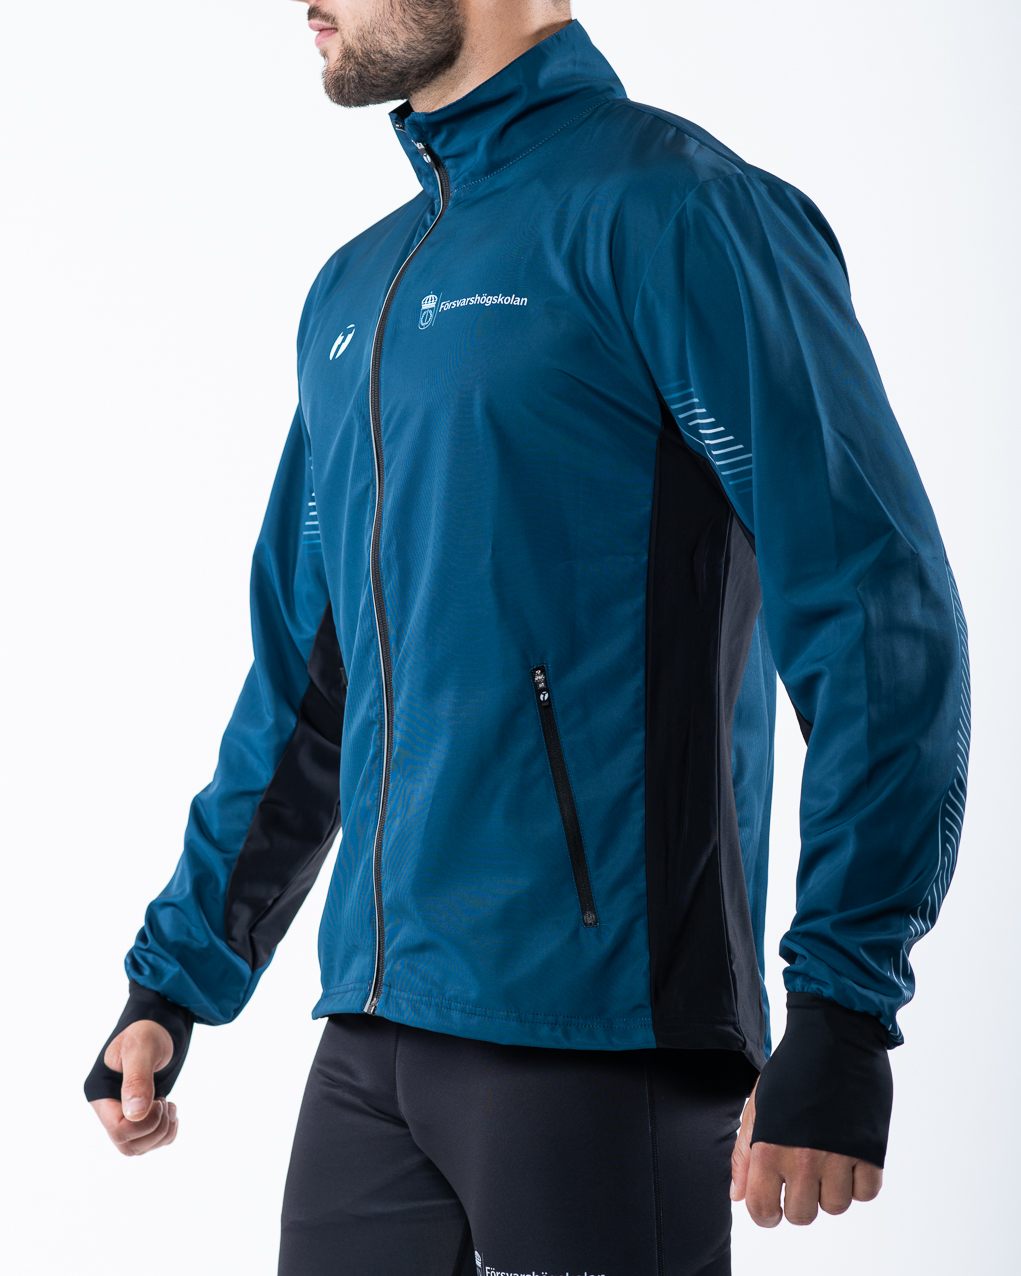 Men's running jacket side